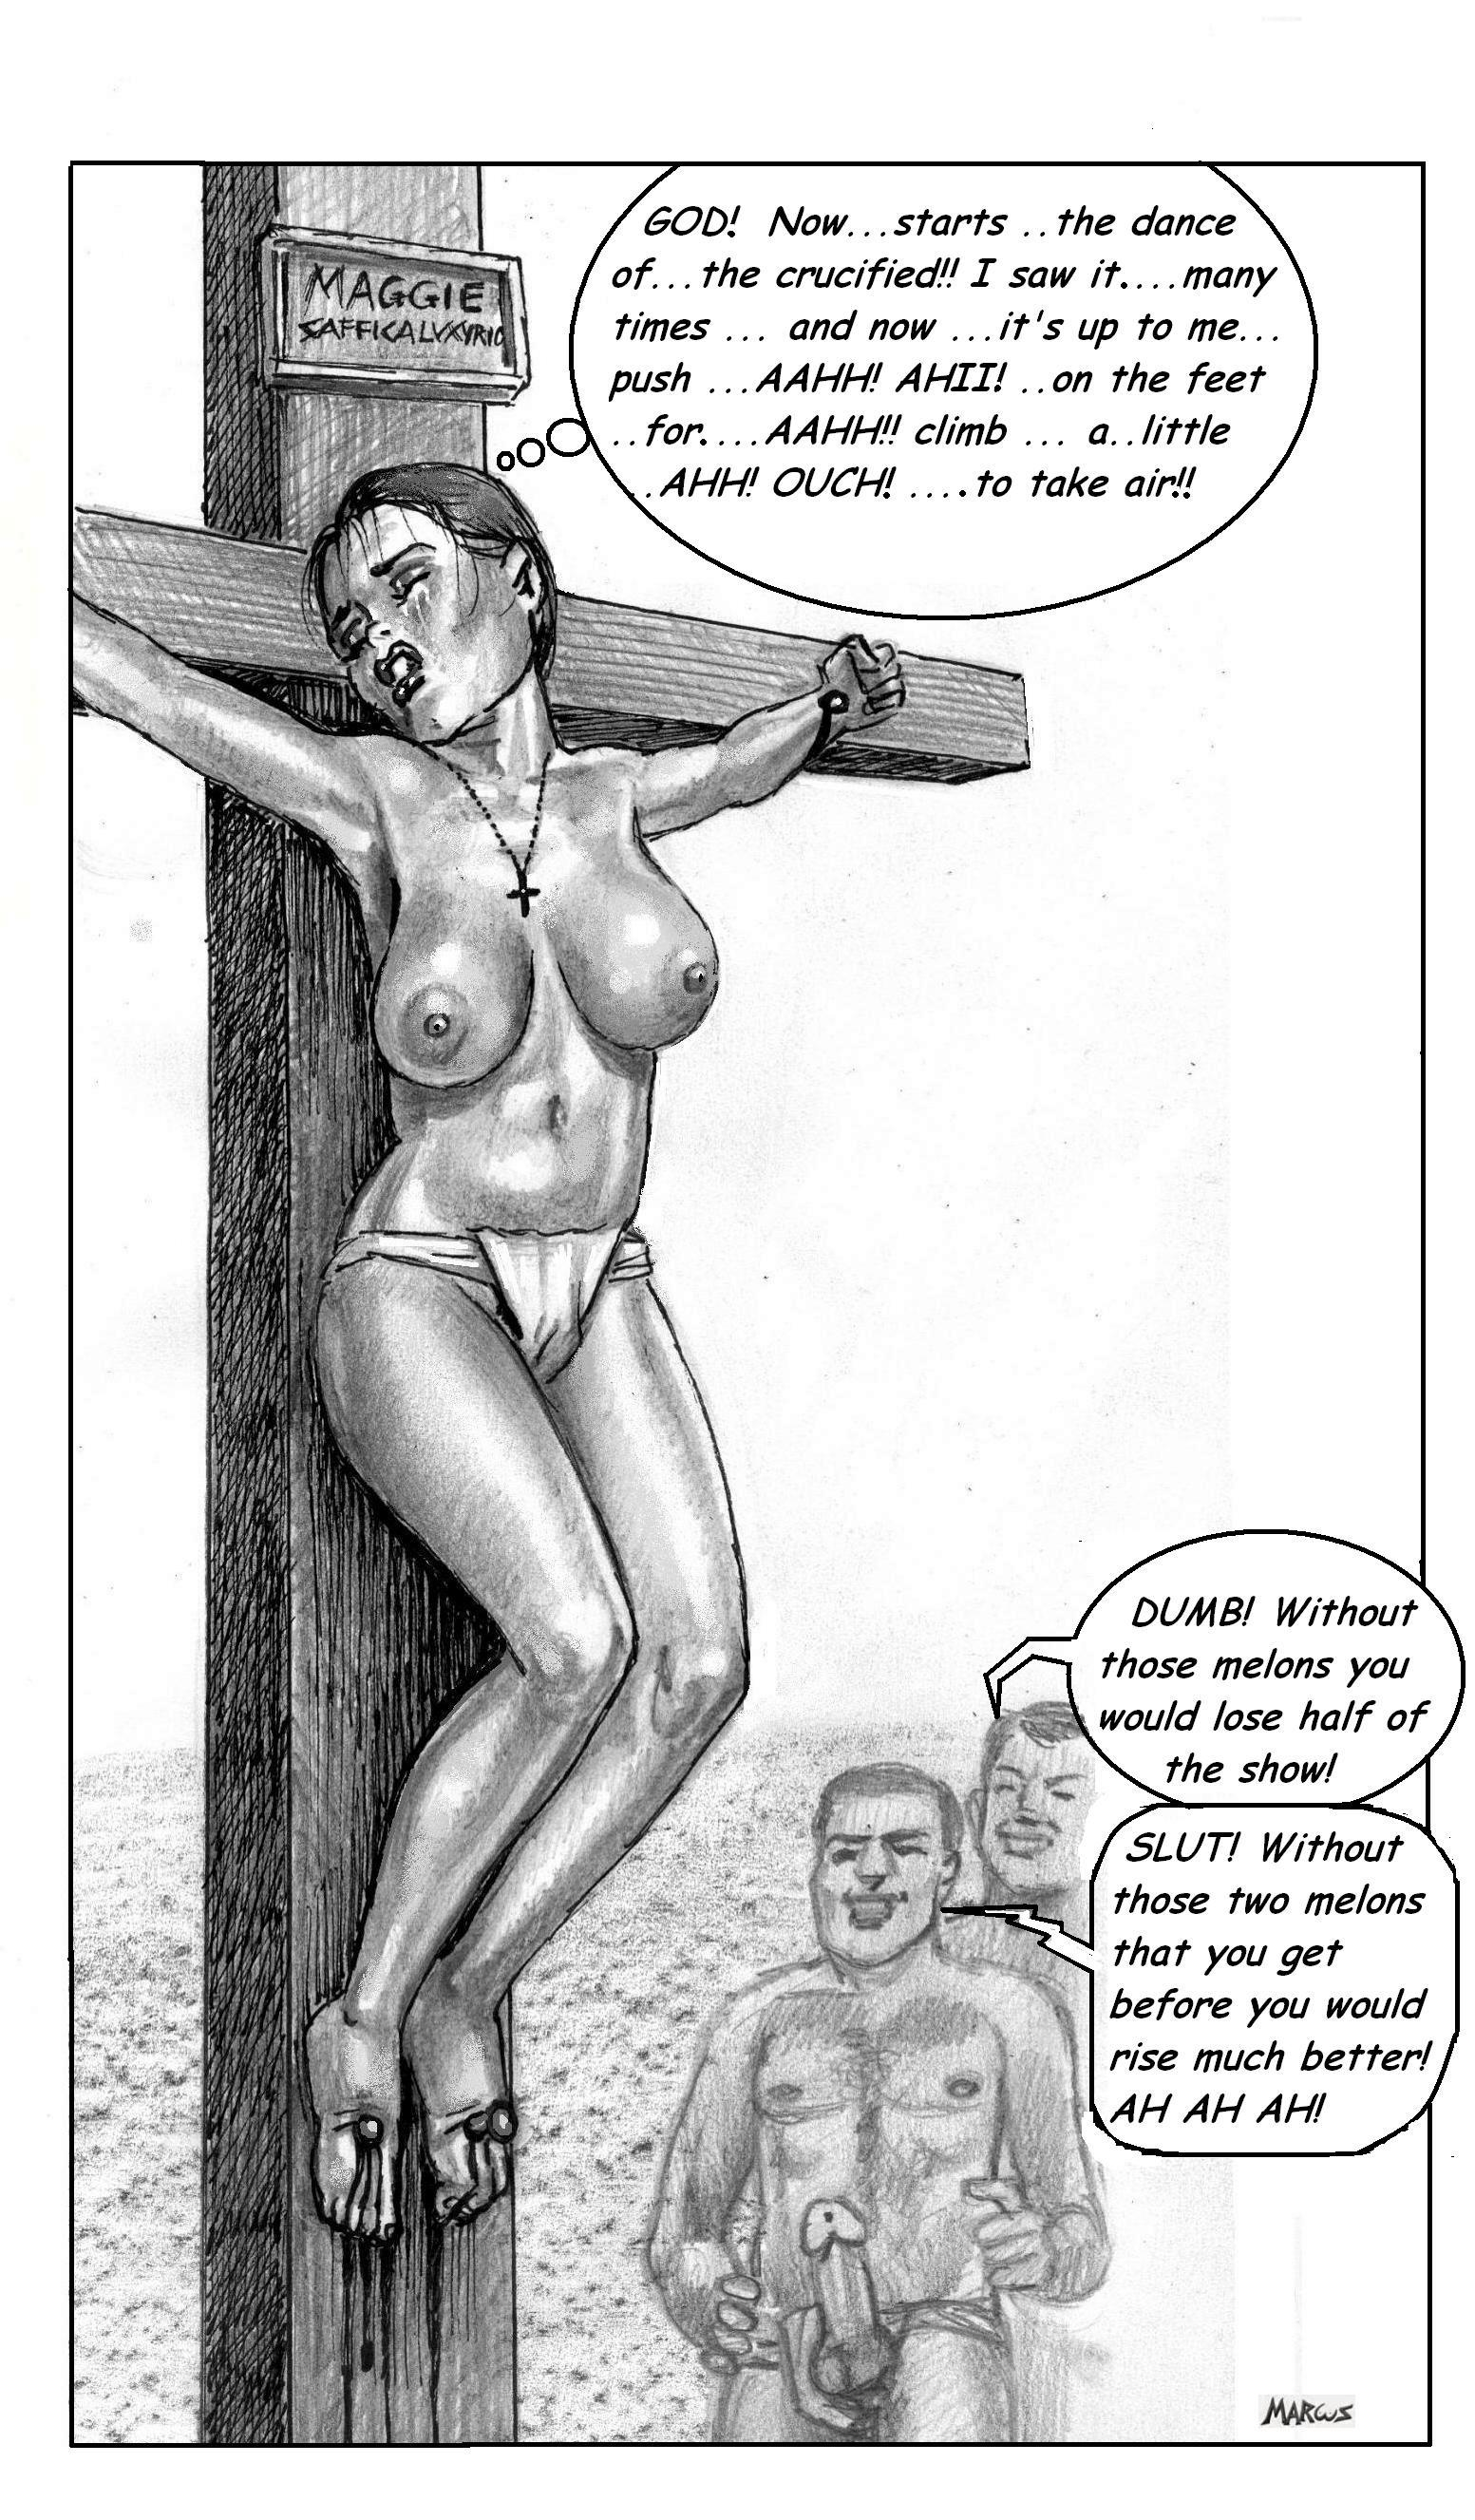 Have one crucified girls porn guessing